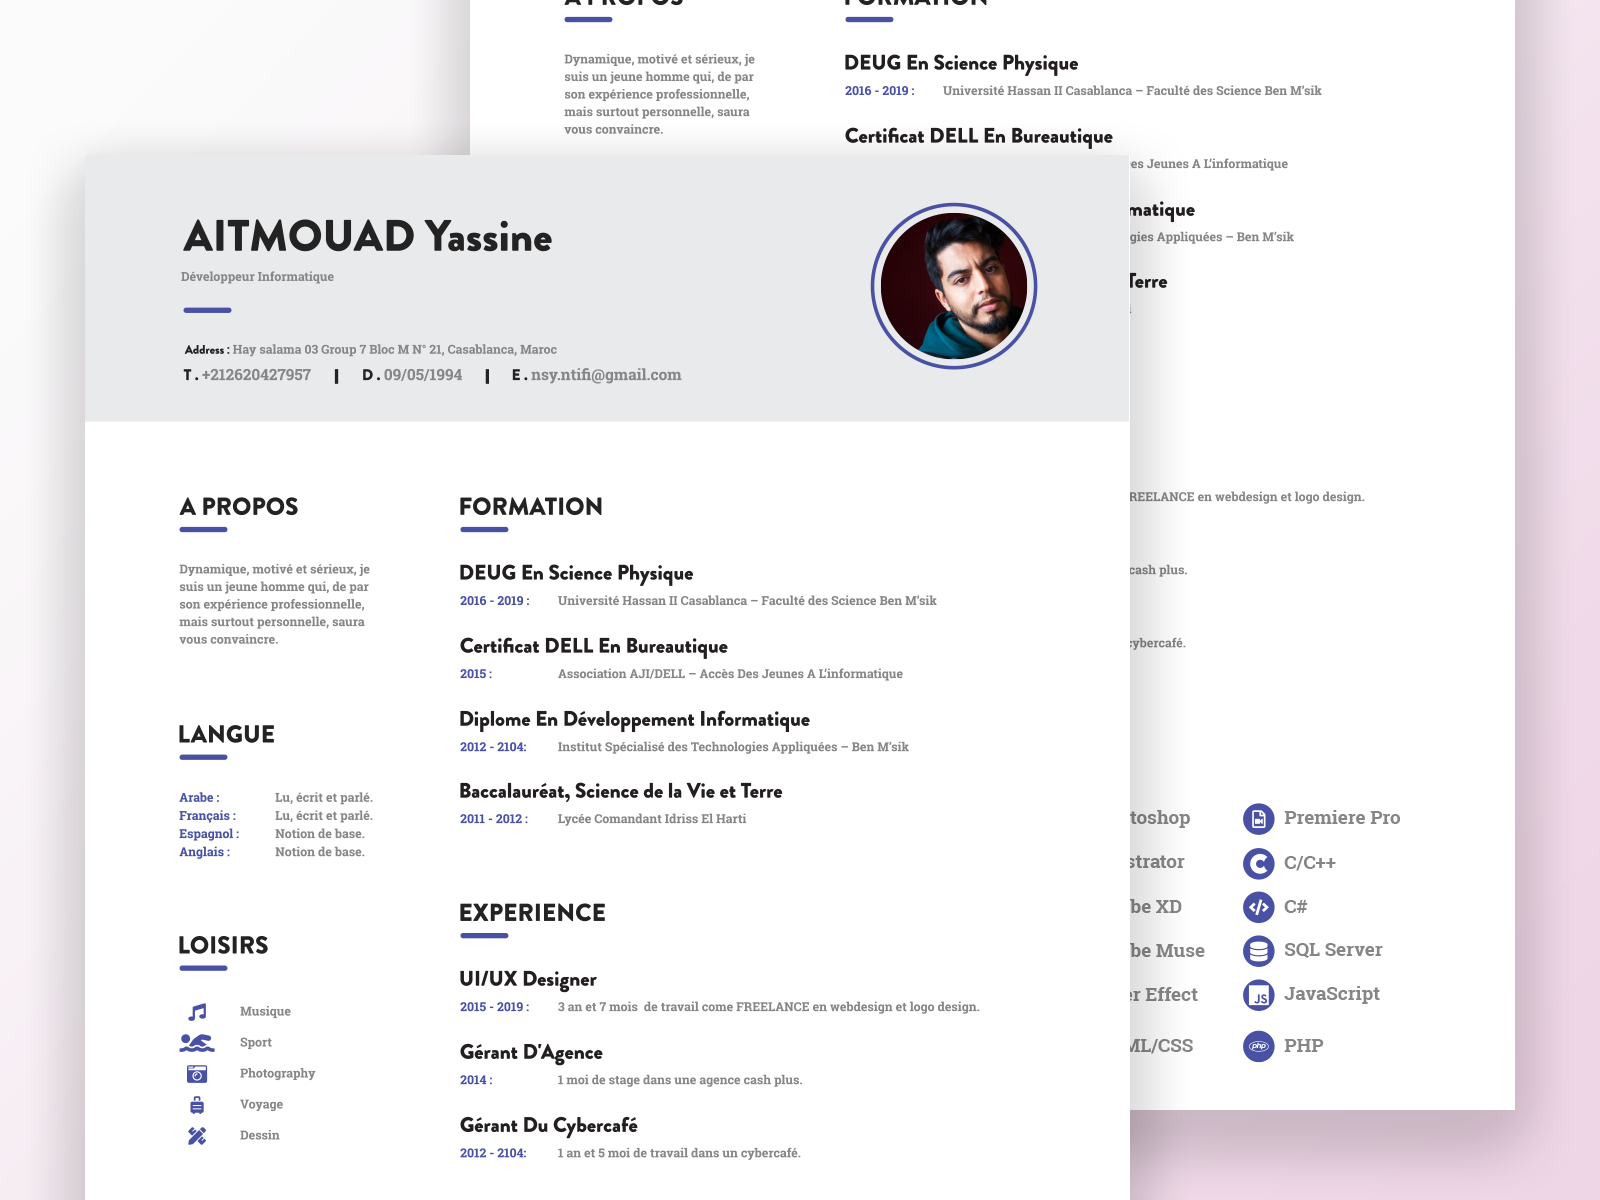 Cv Resume Template By Panda Code On Dribbble